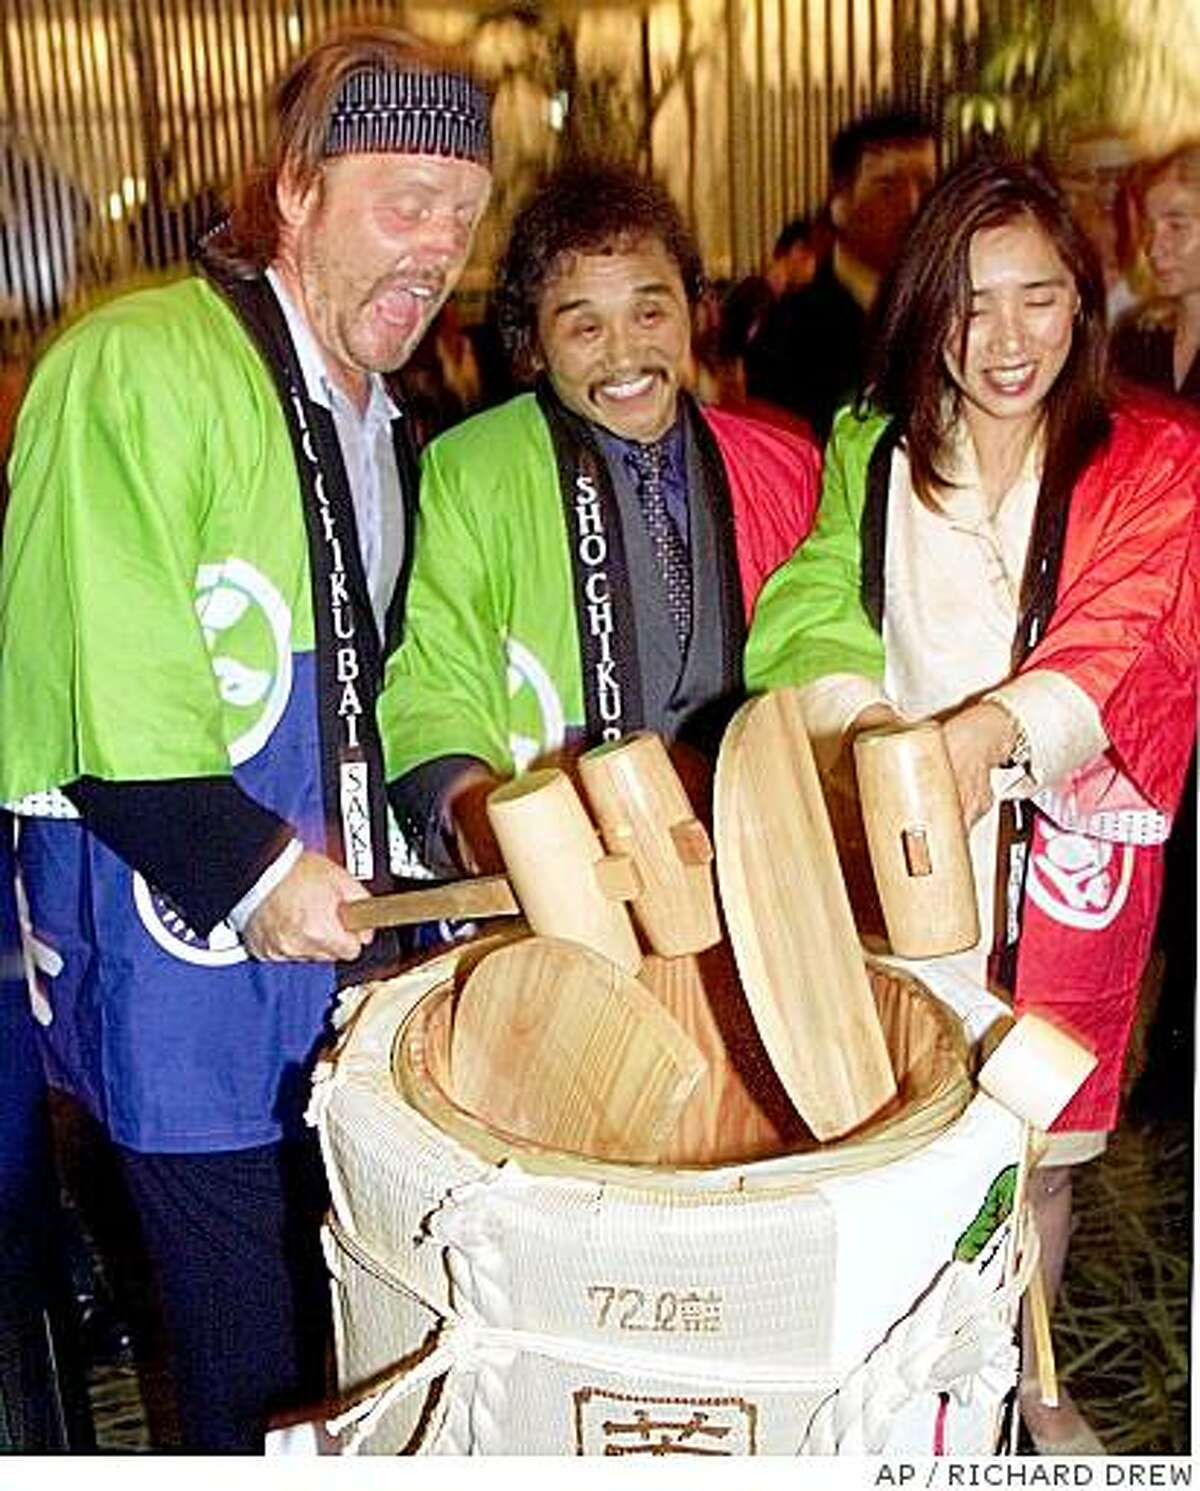 ** FILE ** This Thursday, Aug. 9, 2001 file photo shows Rocky Aoki, center, restaurateur, former athlete and founder of the Japanese steakhouse chain Benihana Inc., as he cracks open a ceremonial cask of sake with the help of co-owner Barbara Matsumura and the restaurant's architect Chris Smith, celebrating the opening of one of his ventures, Haru, in New York. Aoki, who strived to offer diners a sense of magic and entertainment at his Japanese steakhouse Benihana, died Thursday, July 10, 2008 in New York after complications from cancer. He was 69. (AP Photo/Richard Drew, File)